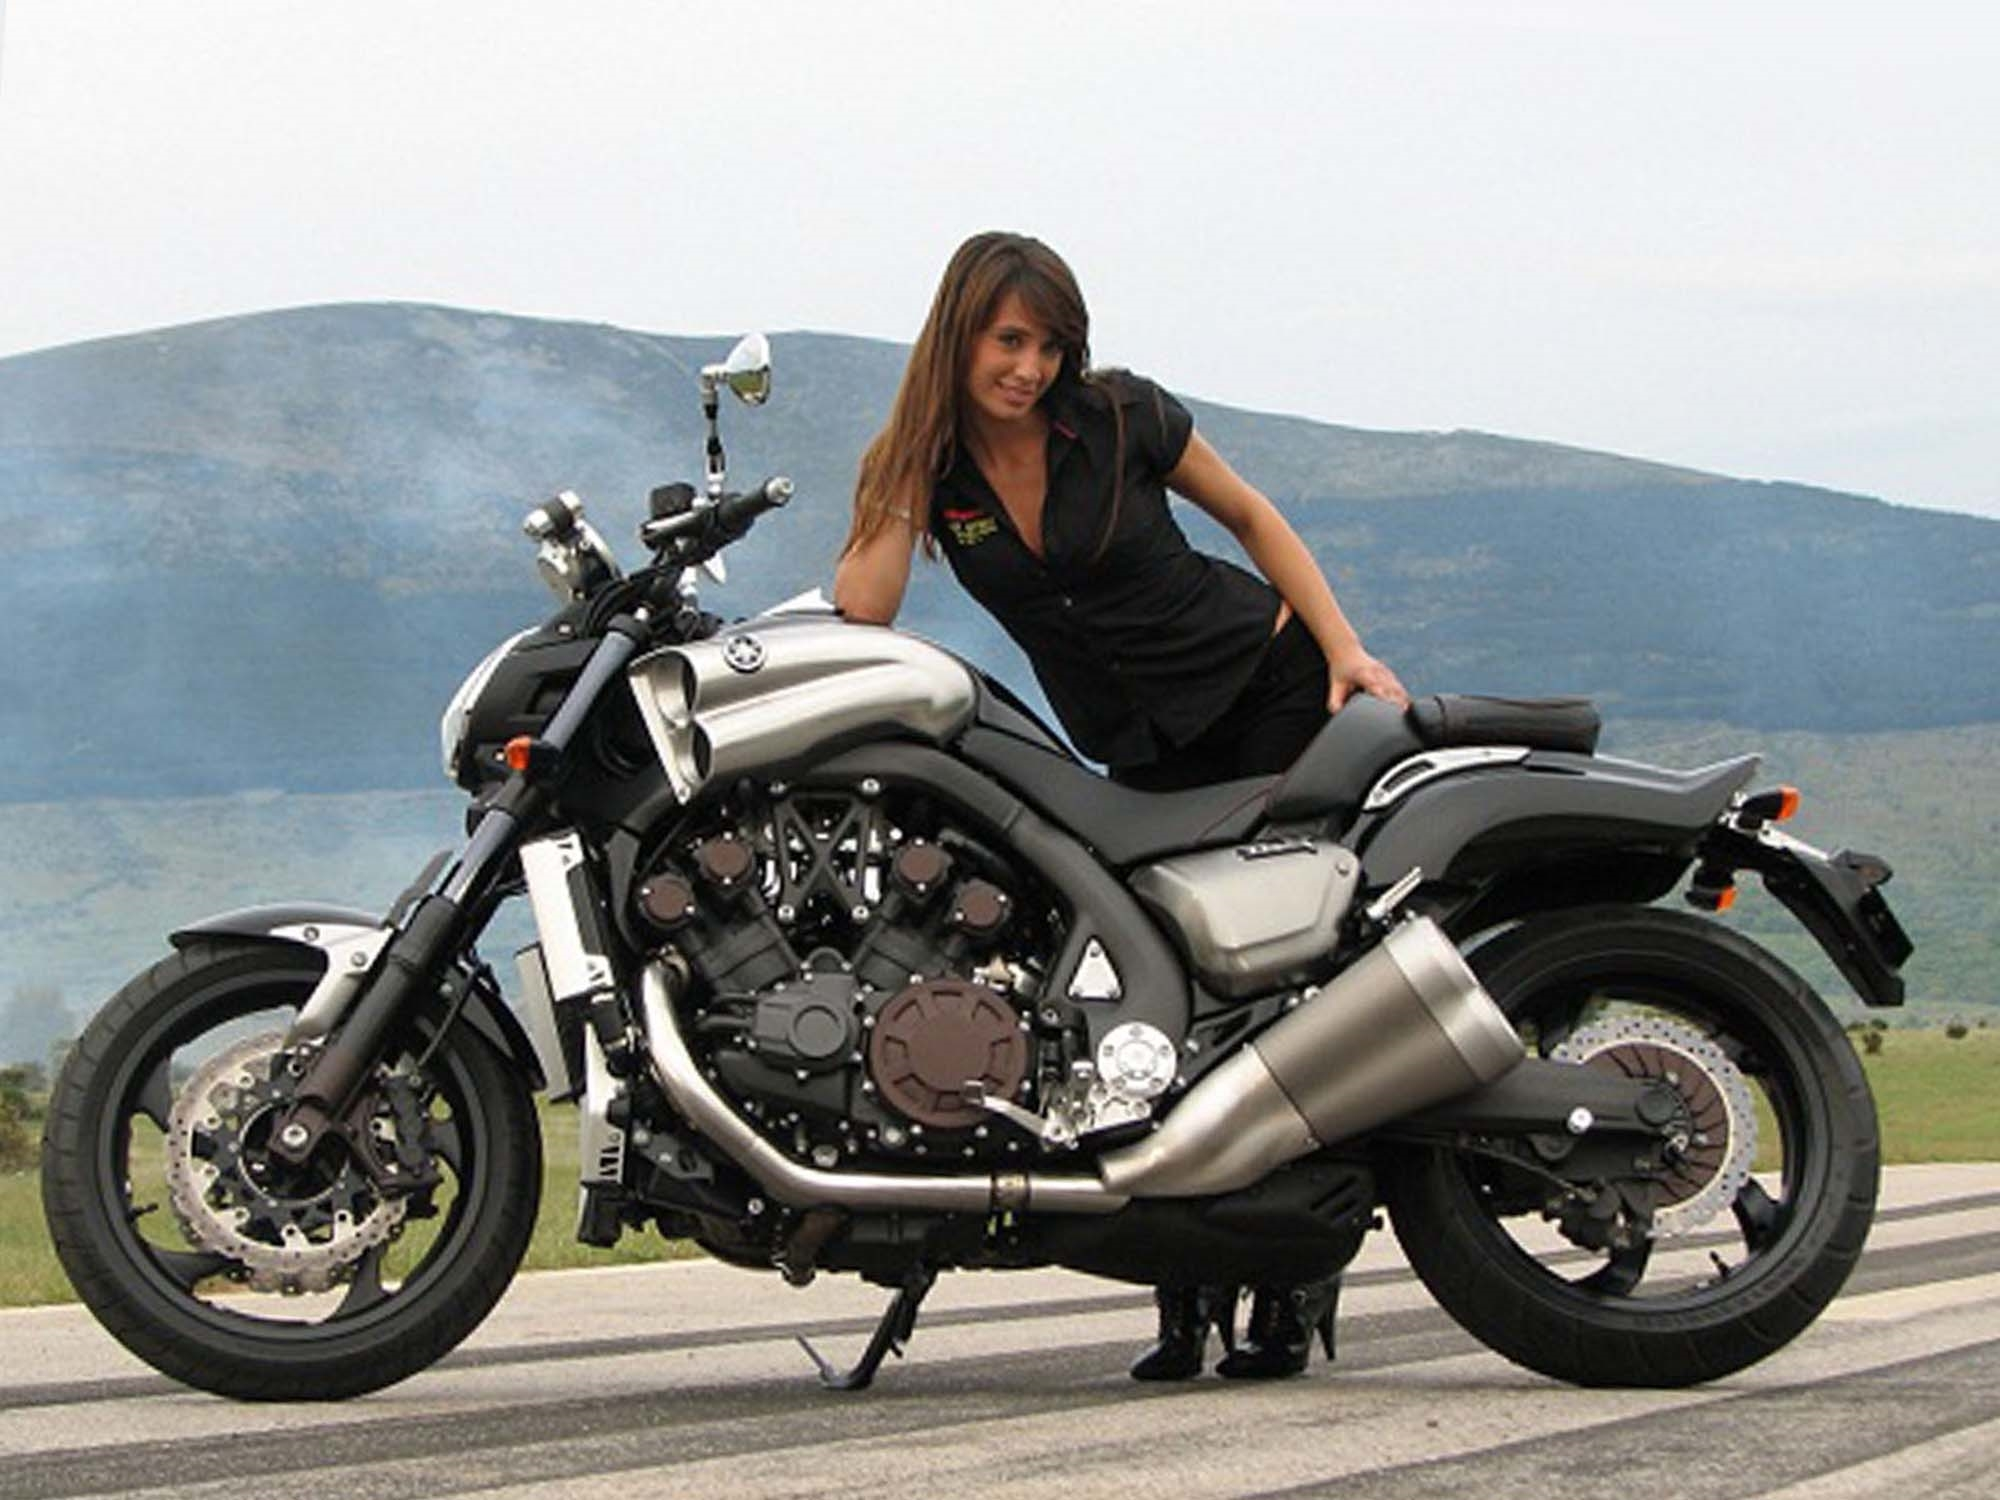 yamaha v max background. Black Bedroom Furniture Sets. Home Design Ideas